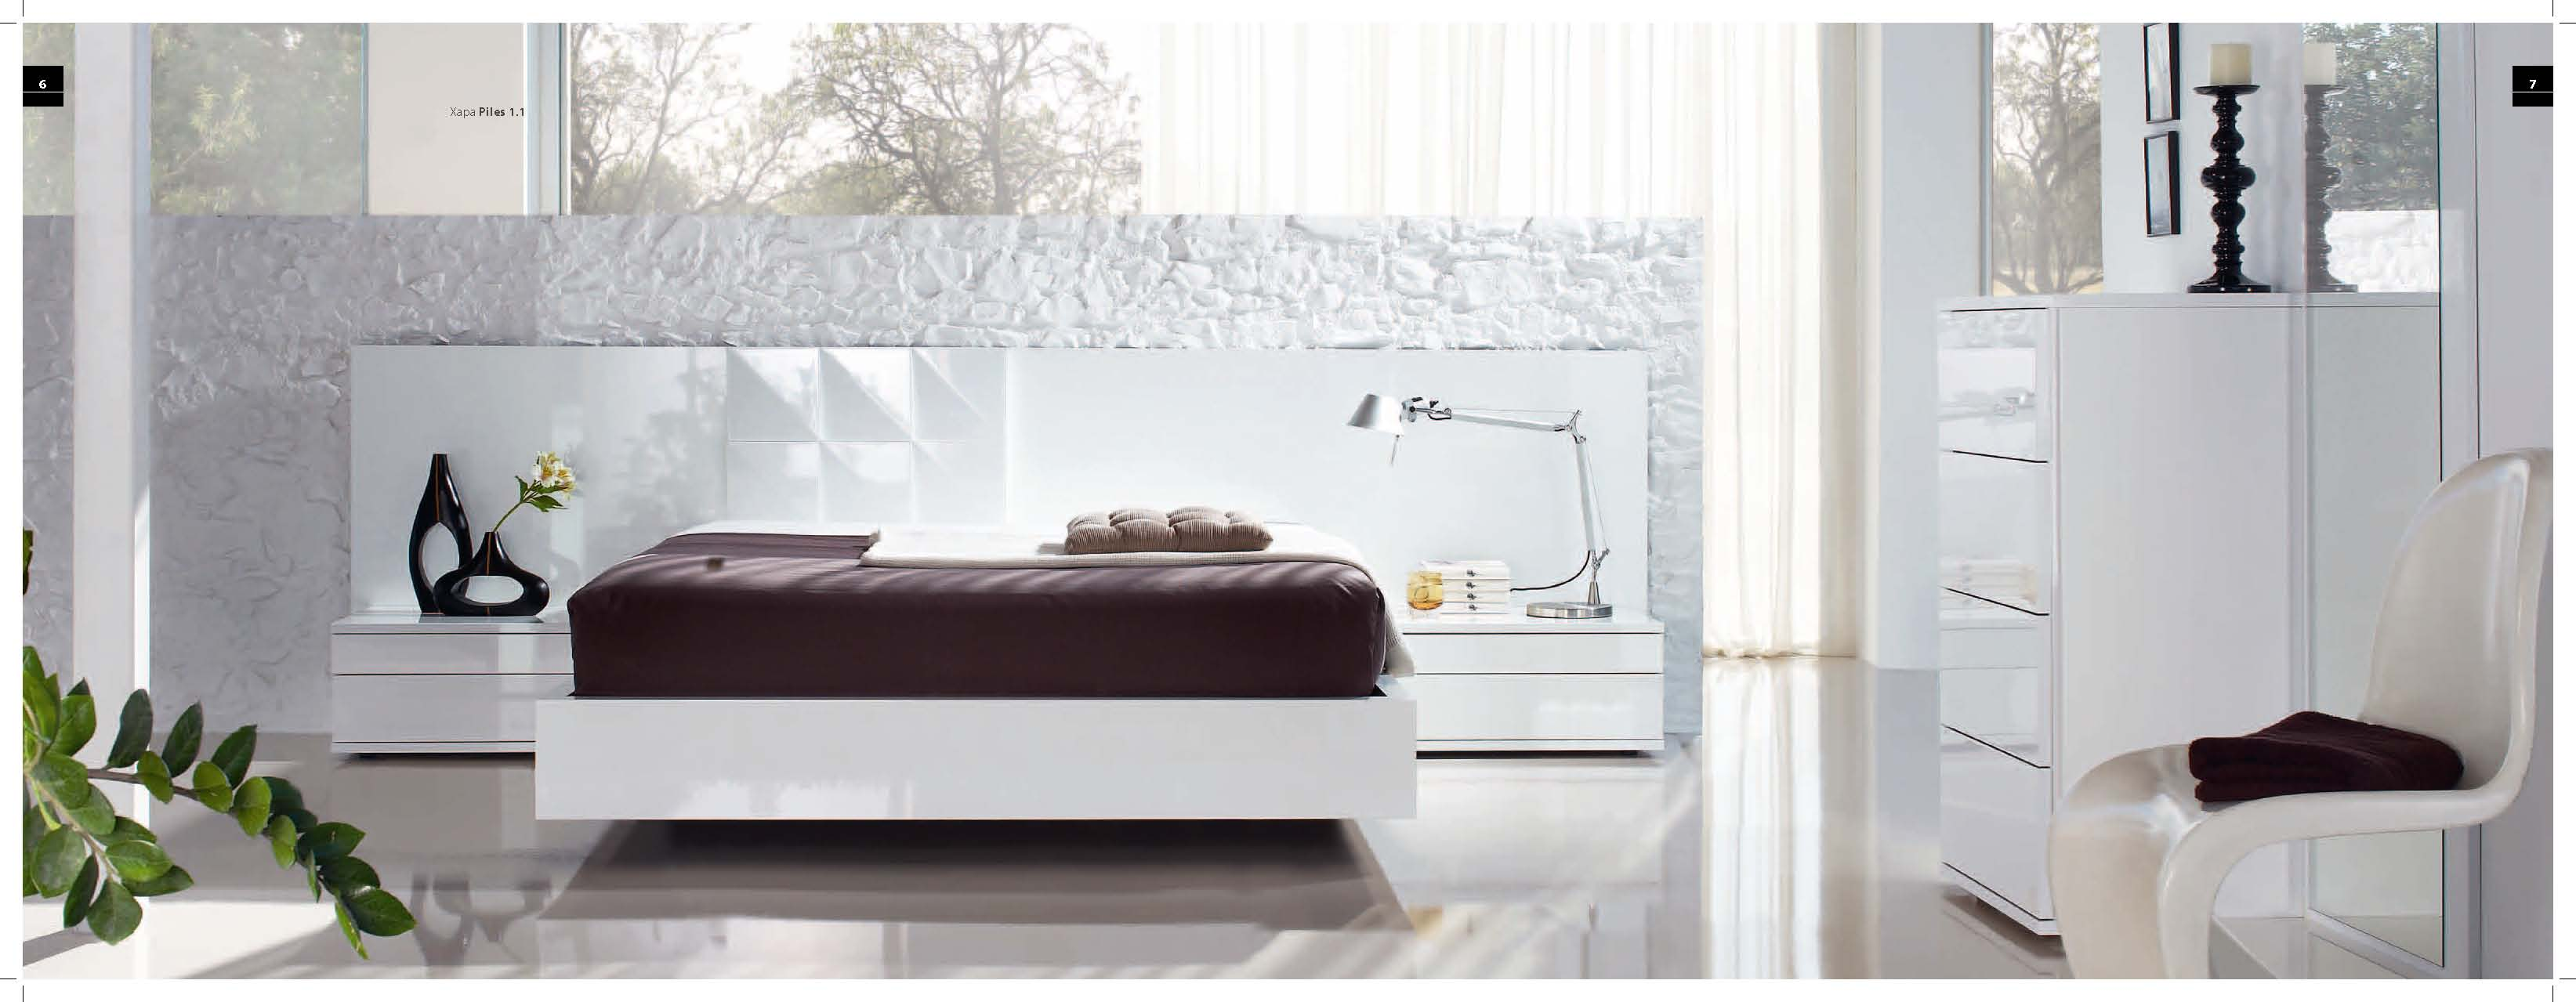 Amazing Modern Bedroom Furniture 3287 x 1279 · 194 kB · jpeg